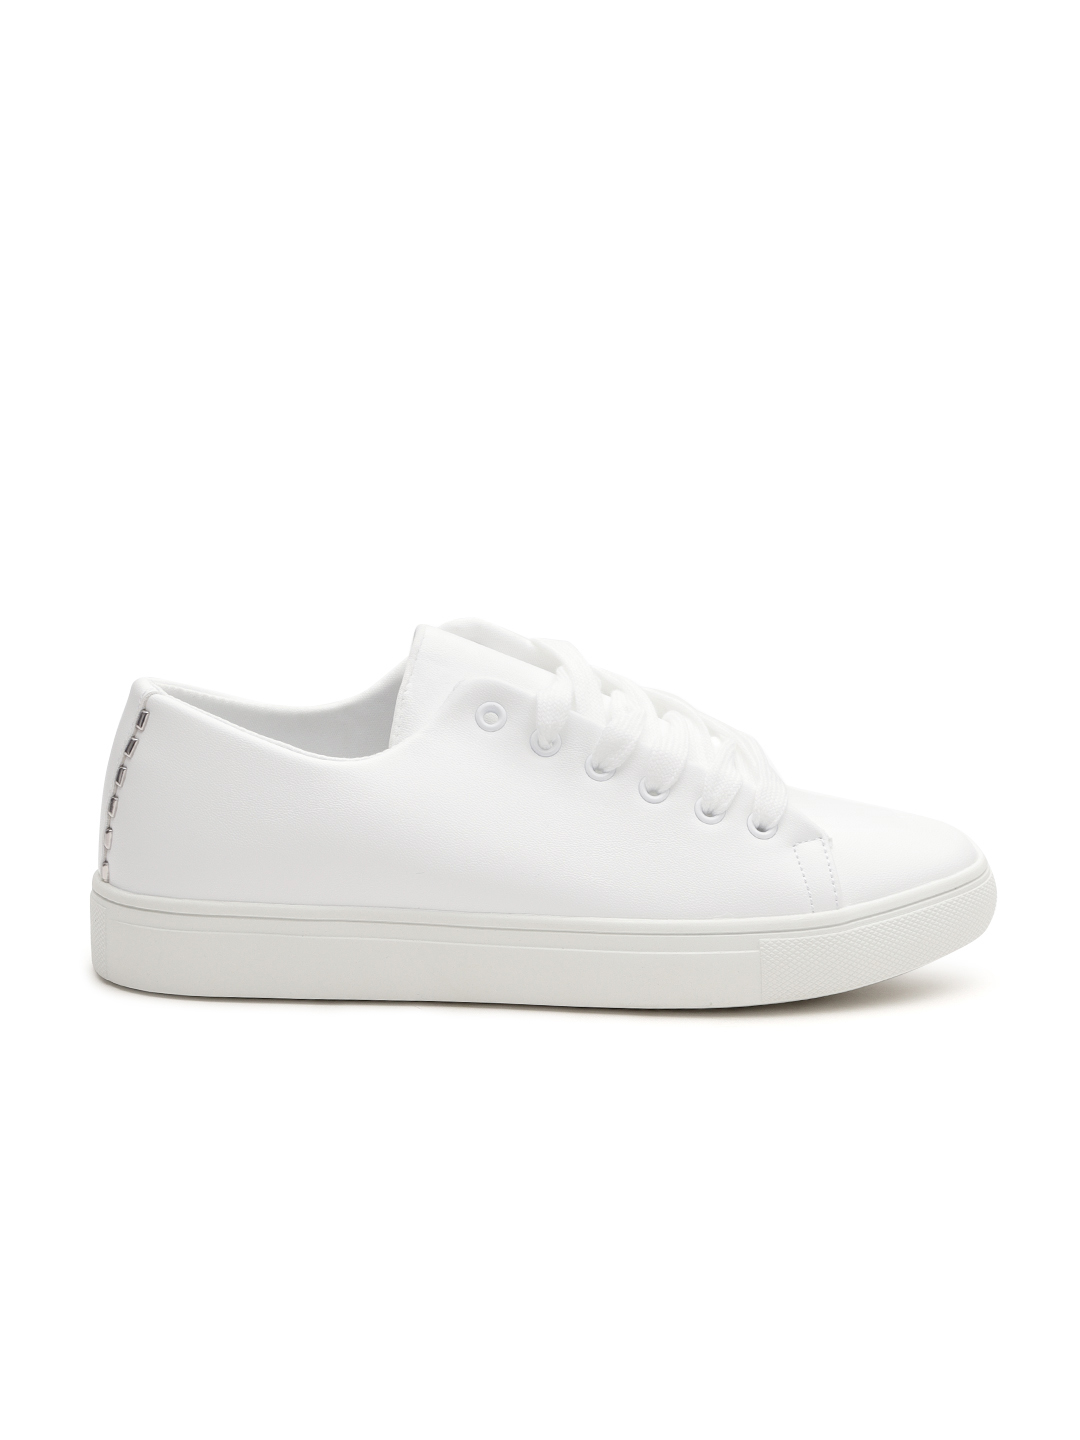 ether Women White Sneakers Price in India